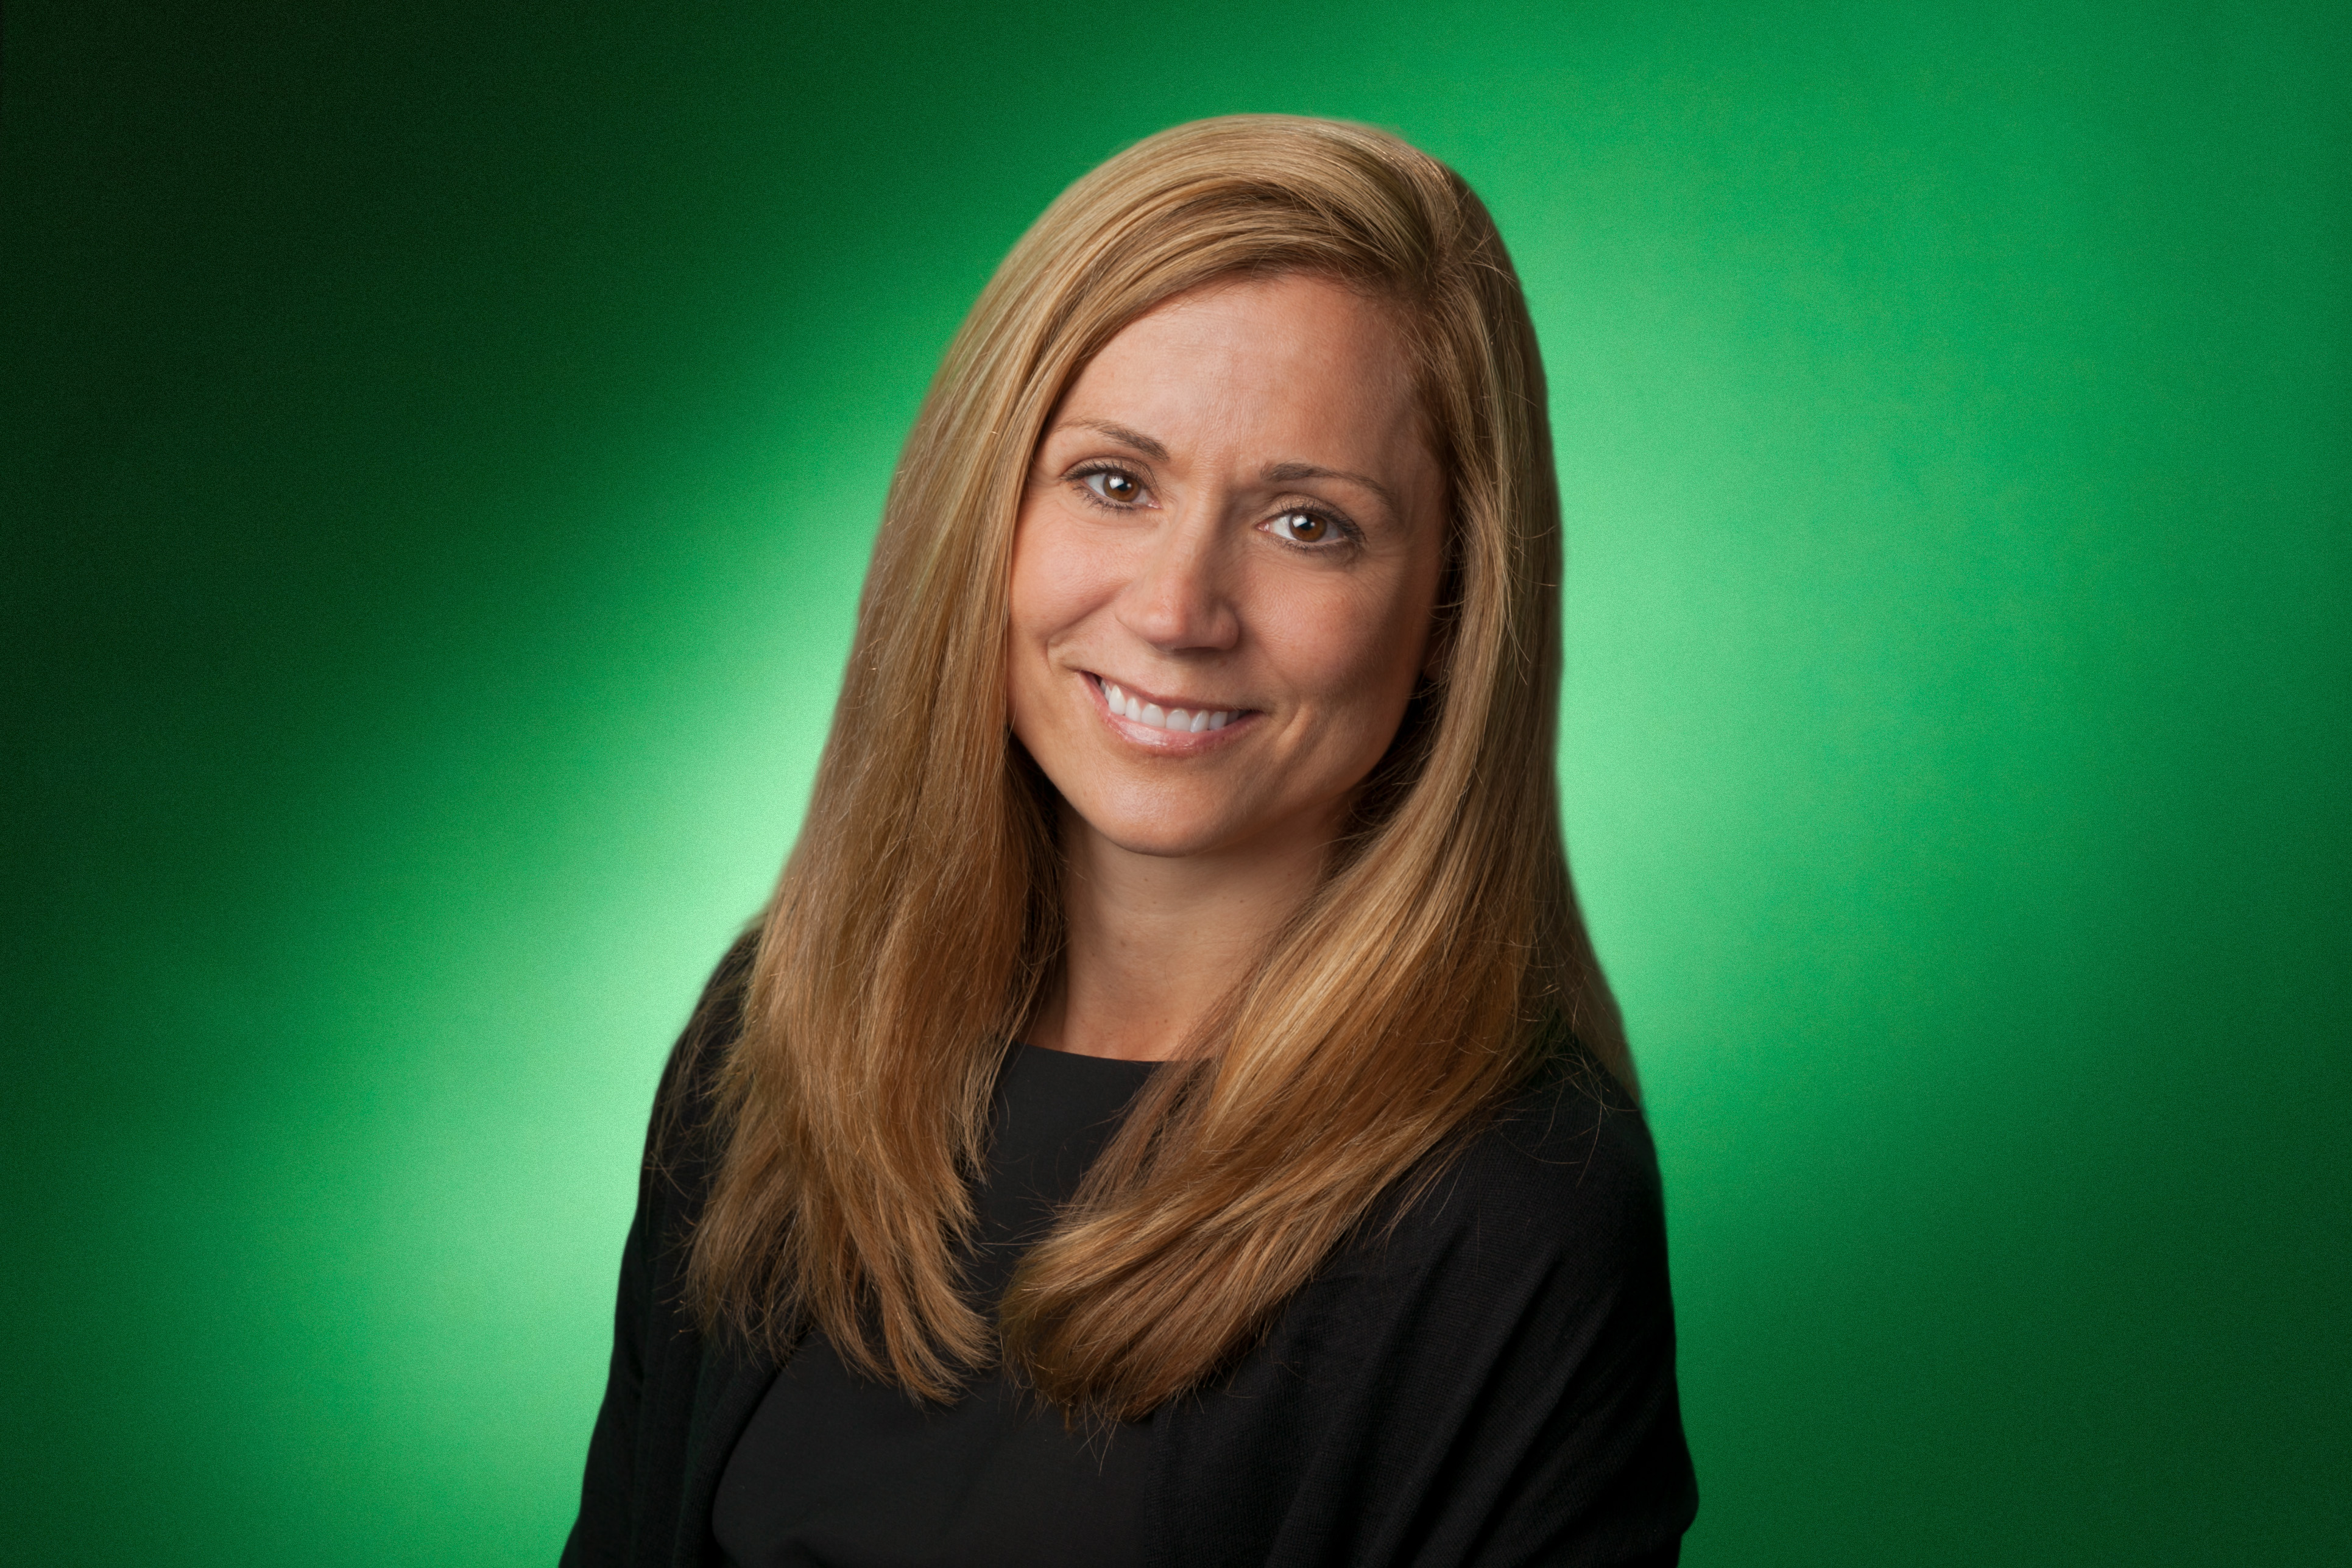 Google's Danielle Russell to speak on Internet trends at GAAS